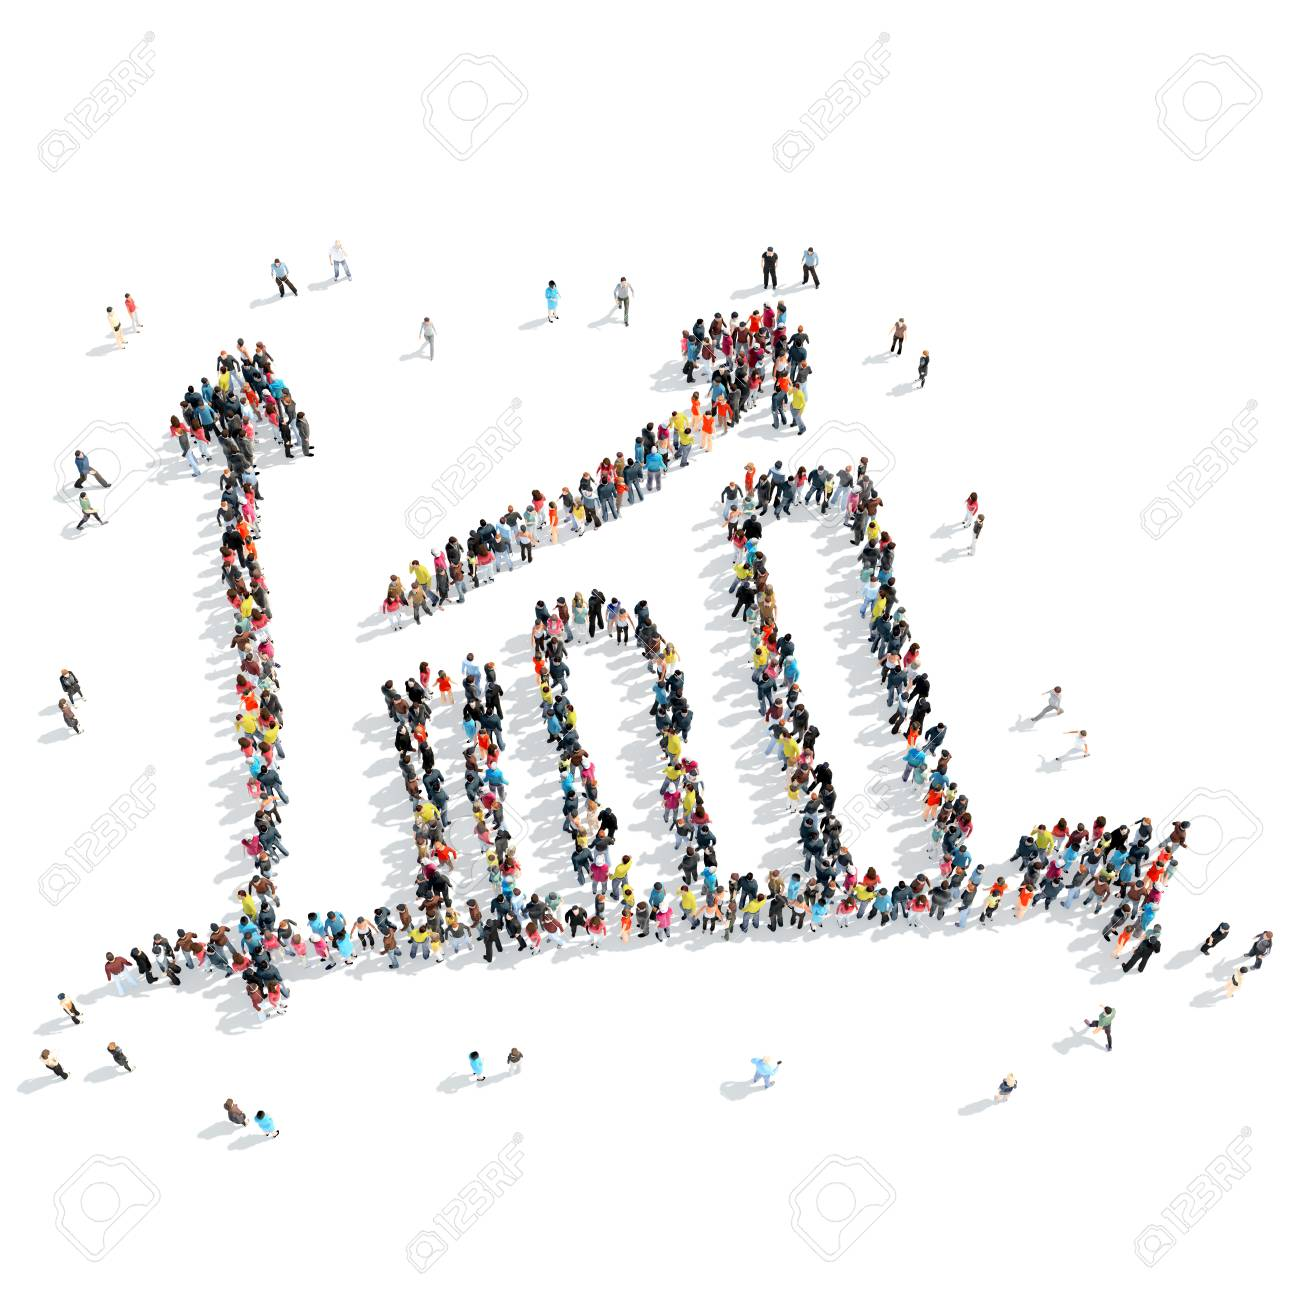 A group of people in the shape of a graph, success, isolated, cartoon, white background. - 46002694